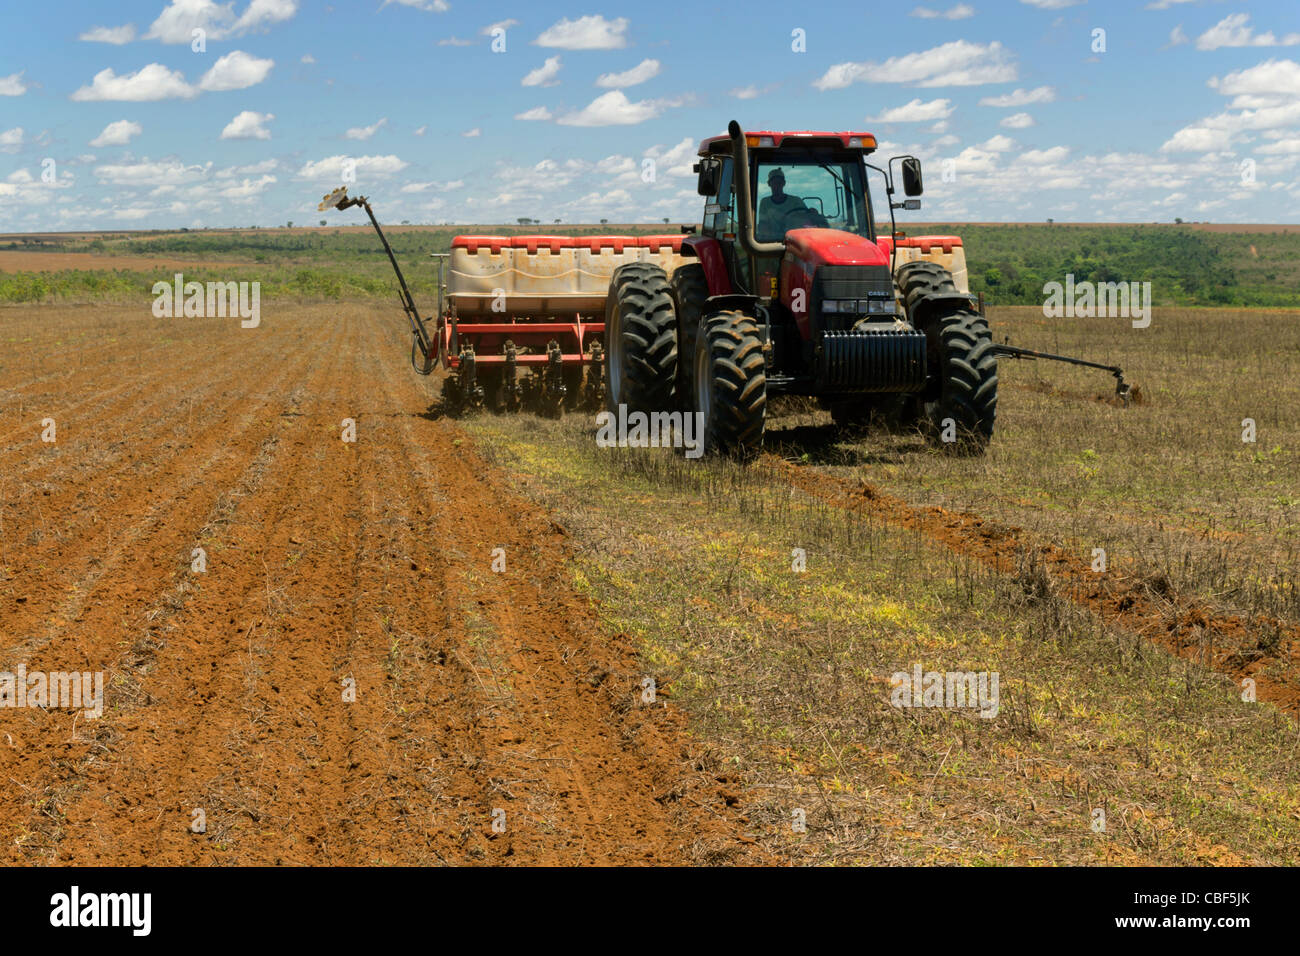 Mechanized agriculture: Maize sowing (seeding, planting) machine, southern Goiás State, central Brazil: impact - Stock Image